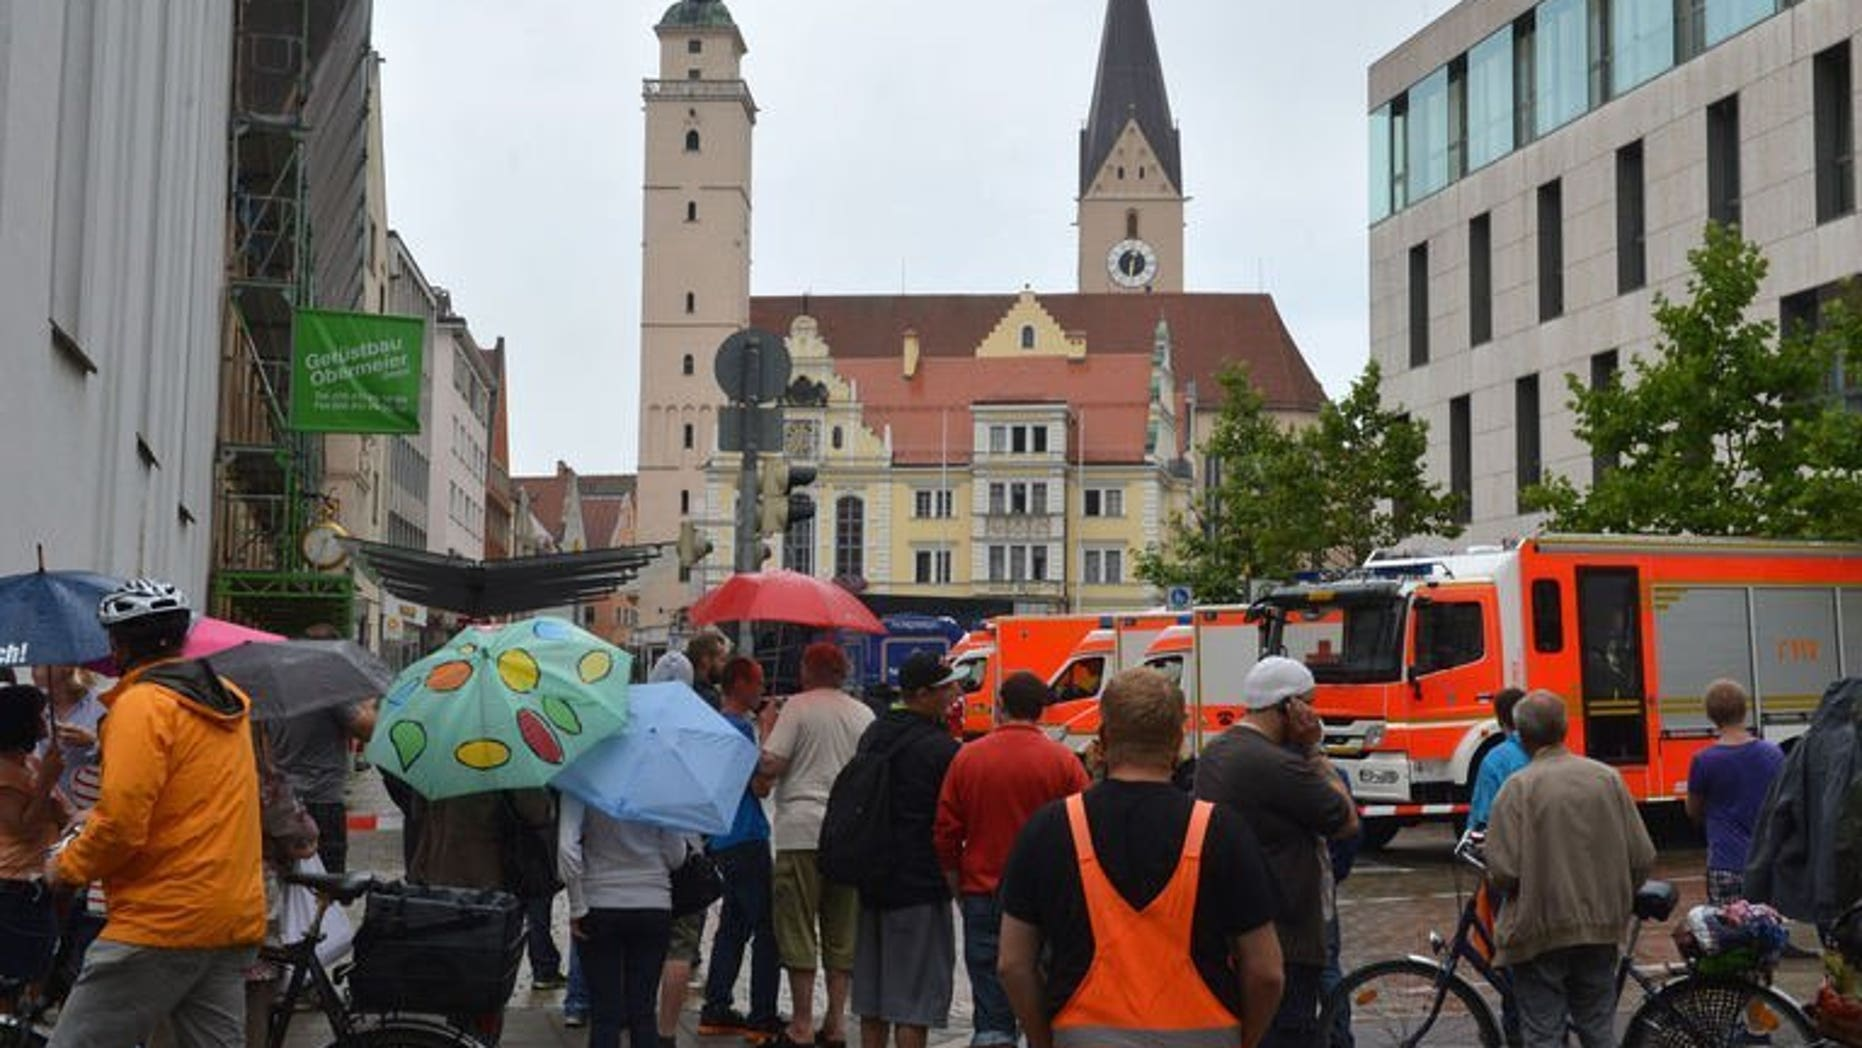 Onlookers stand in a street near the town hall in Ingolstadt, southern Germany, on August 19, 2013. A man claiming to be armed took several hostages in the town hall on Monday, police said.